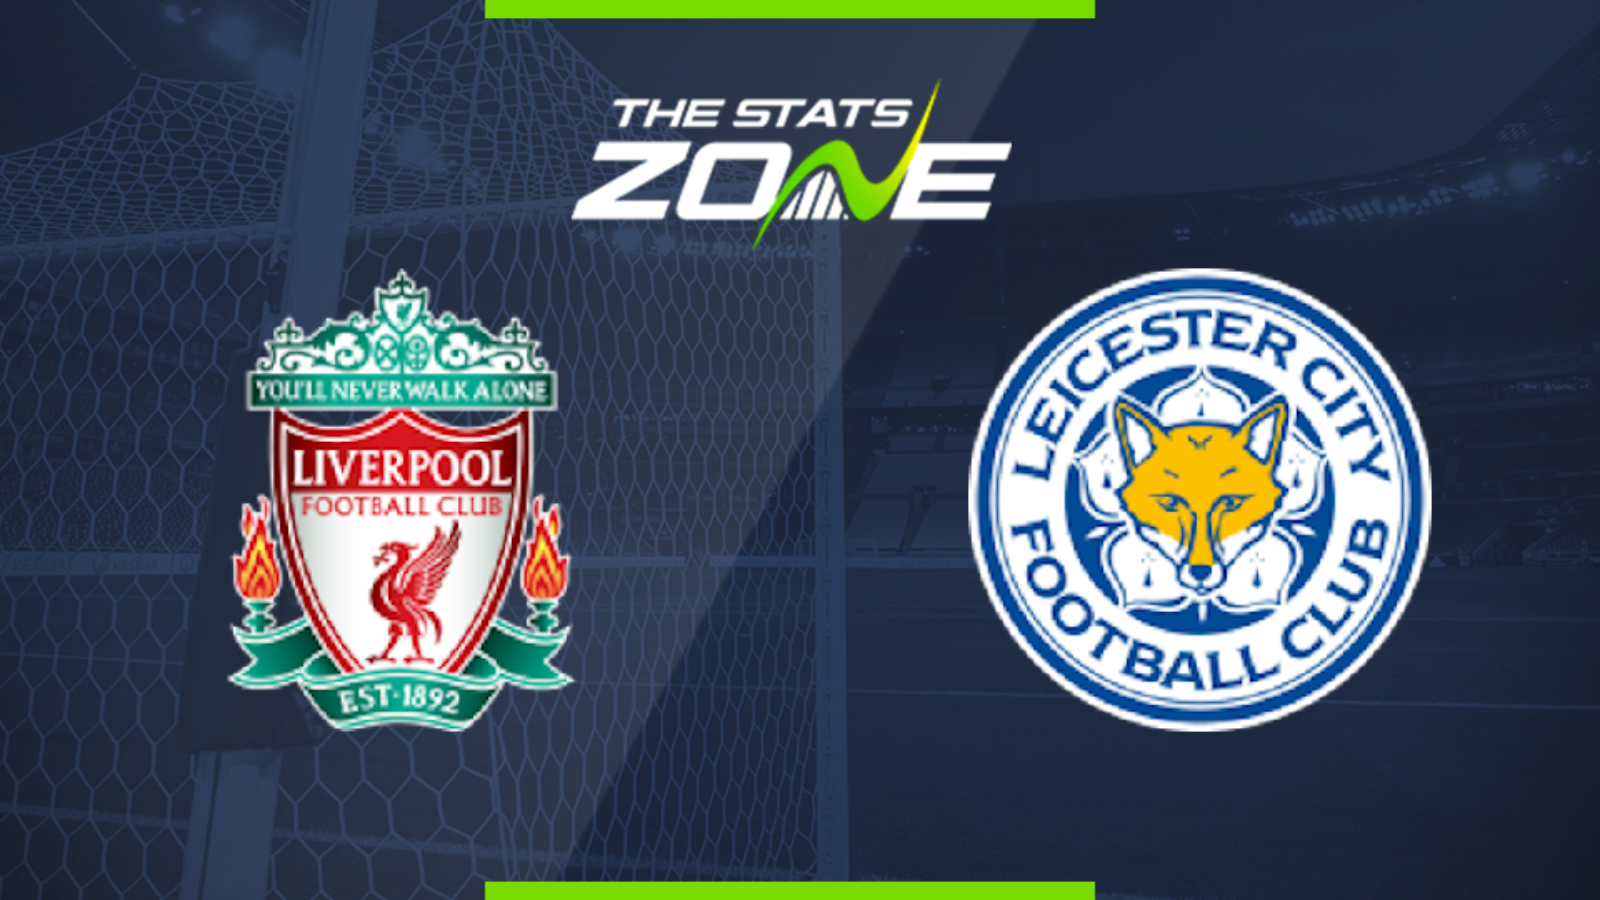 2019 20 Premier League Liverpool Vs Leicester Preview Prediction The Stats Zone